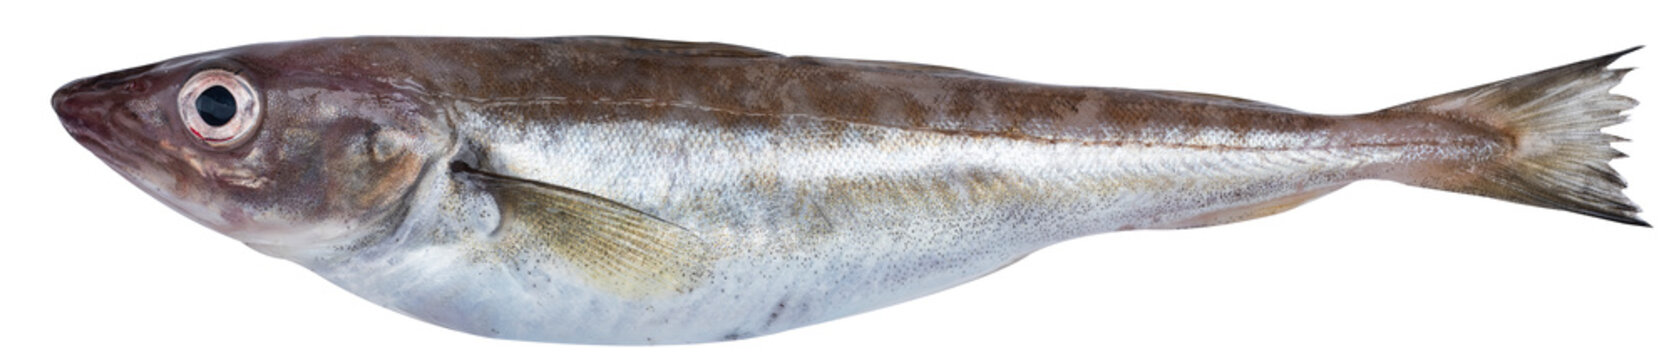 Fresh whiting fishes